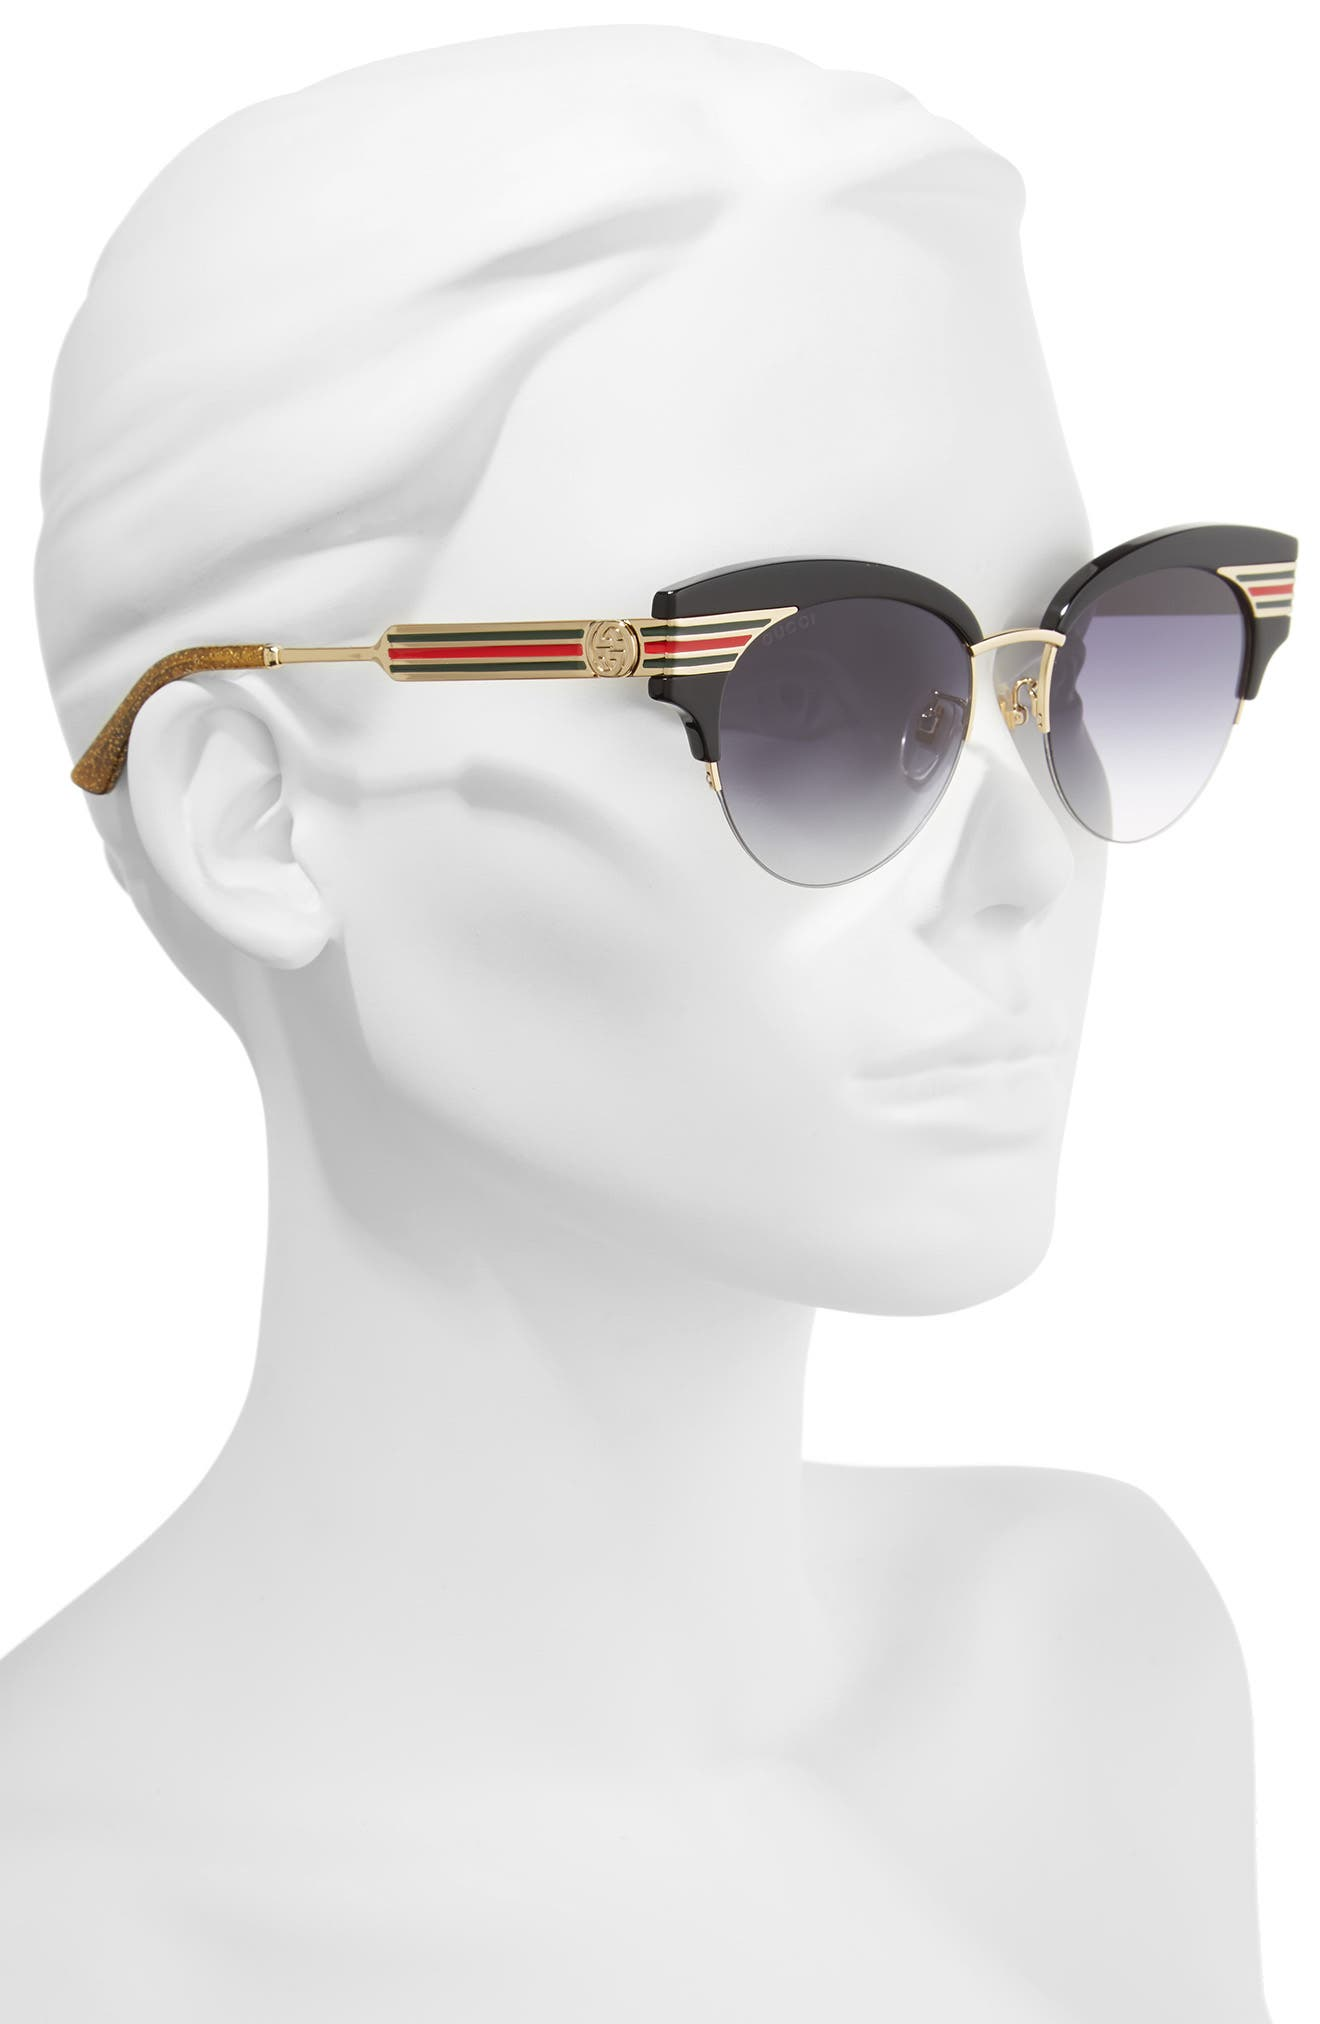 53mm Cat Eye Sunglasses,                             Alternate thumbnail 2, color,                             Gold